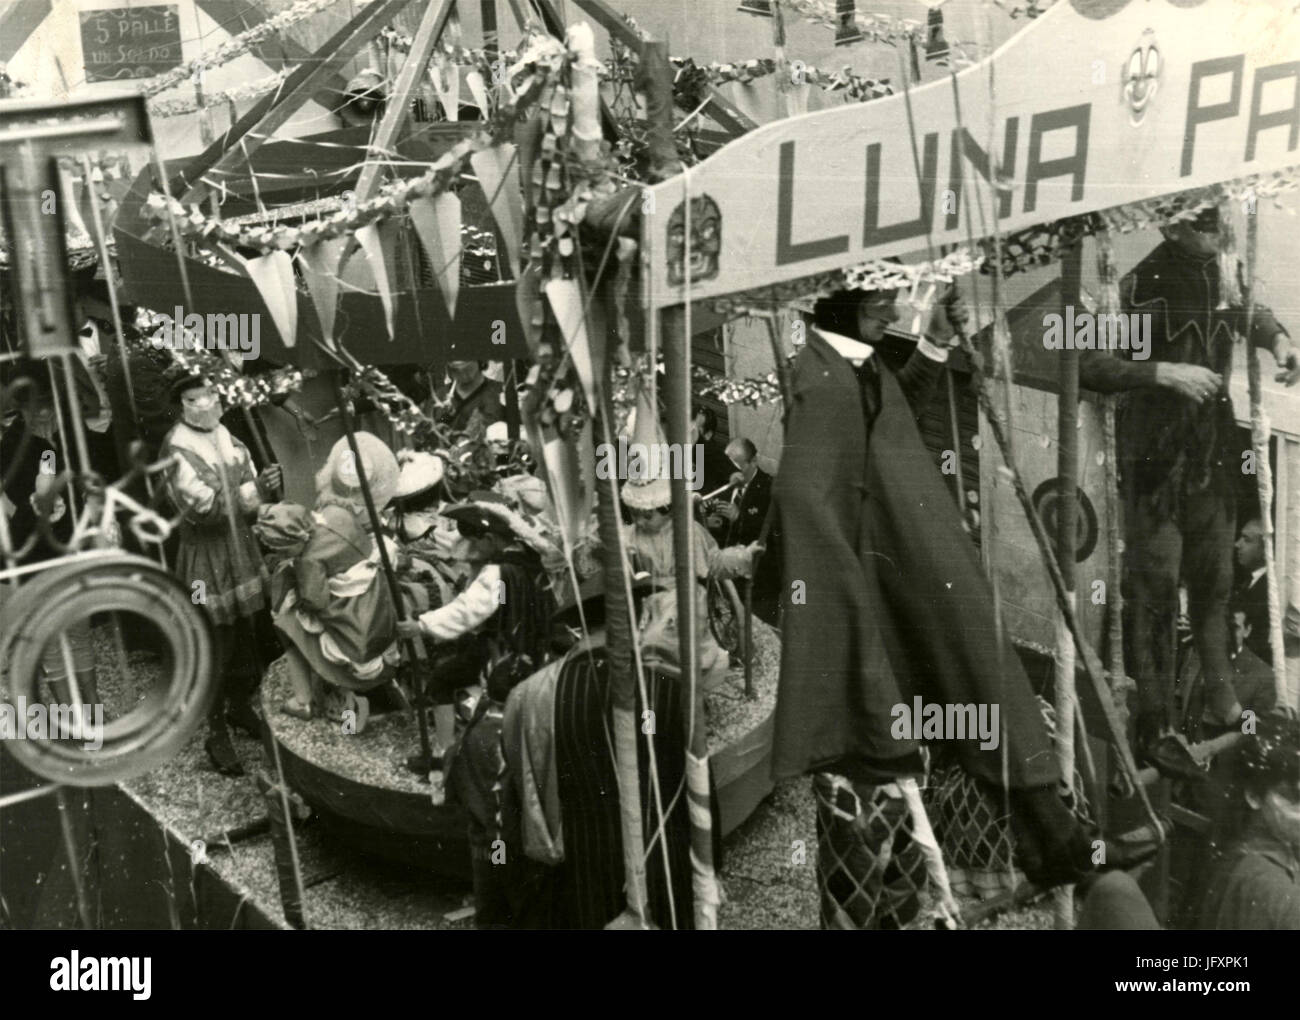 Parade of allegorical wagons, Rieti Carneval 1960, Italy - Stock Image